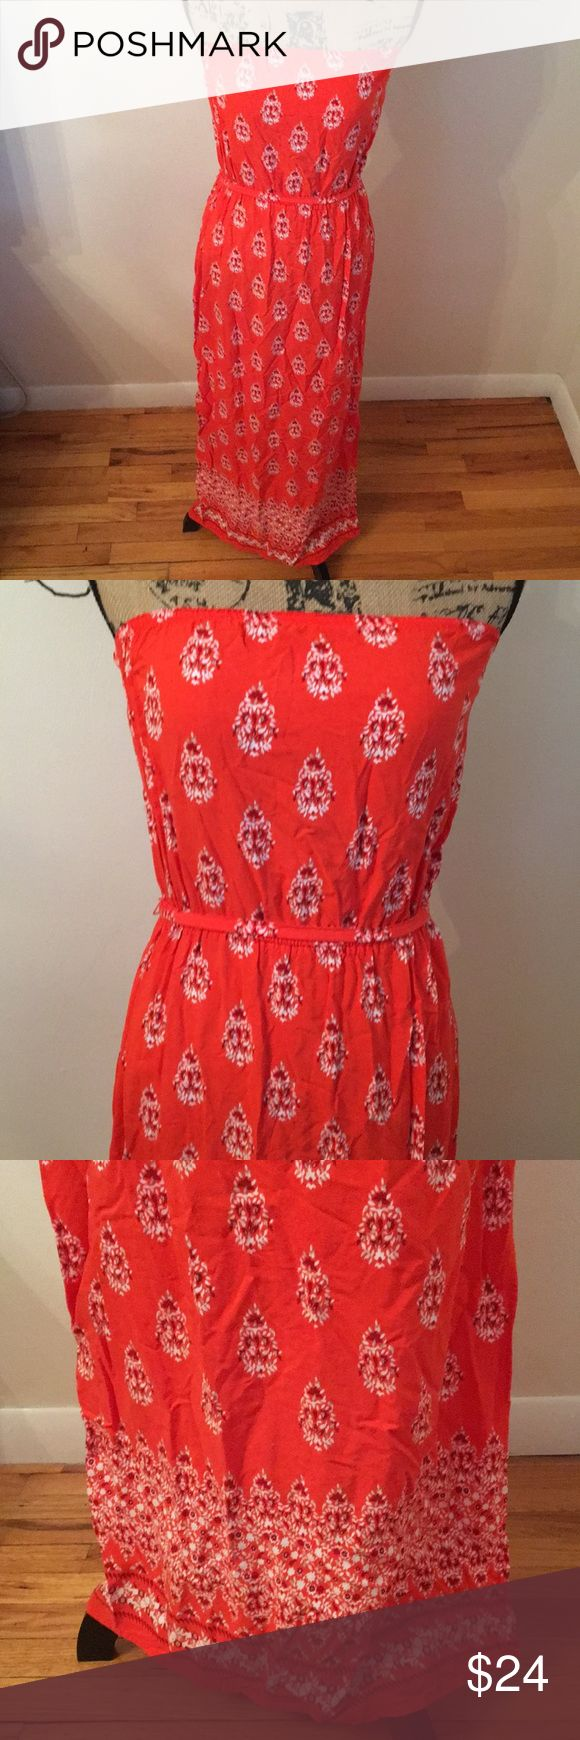 Sleeveless Bandana Print Maxi Dress I don't think this has ever been worn. Wrinkles from storage. Excellent condition. Has a hippie-boho-beach vibe. Orange and white. Would look great with dark skin. Old Navy Dresses Maxi